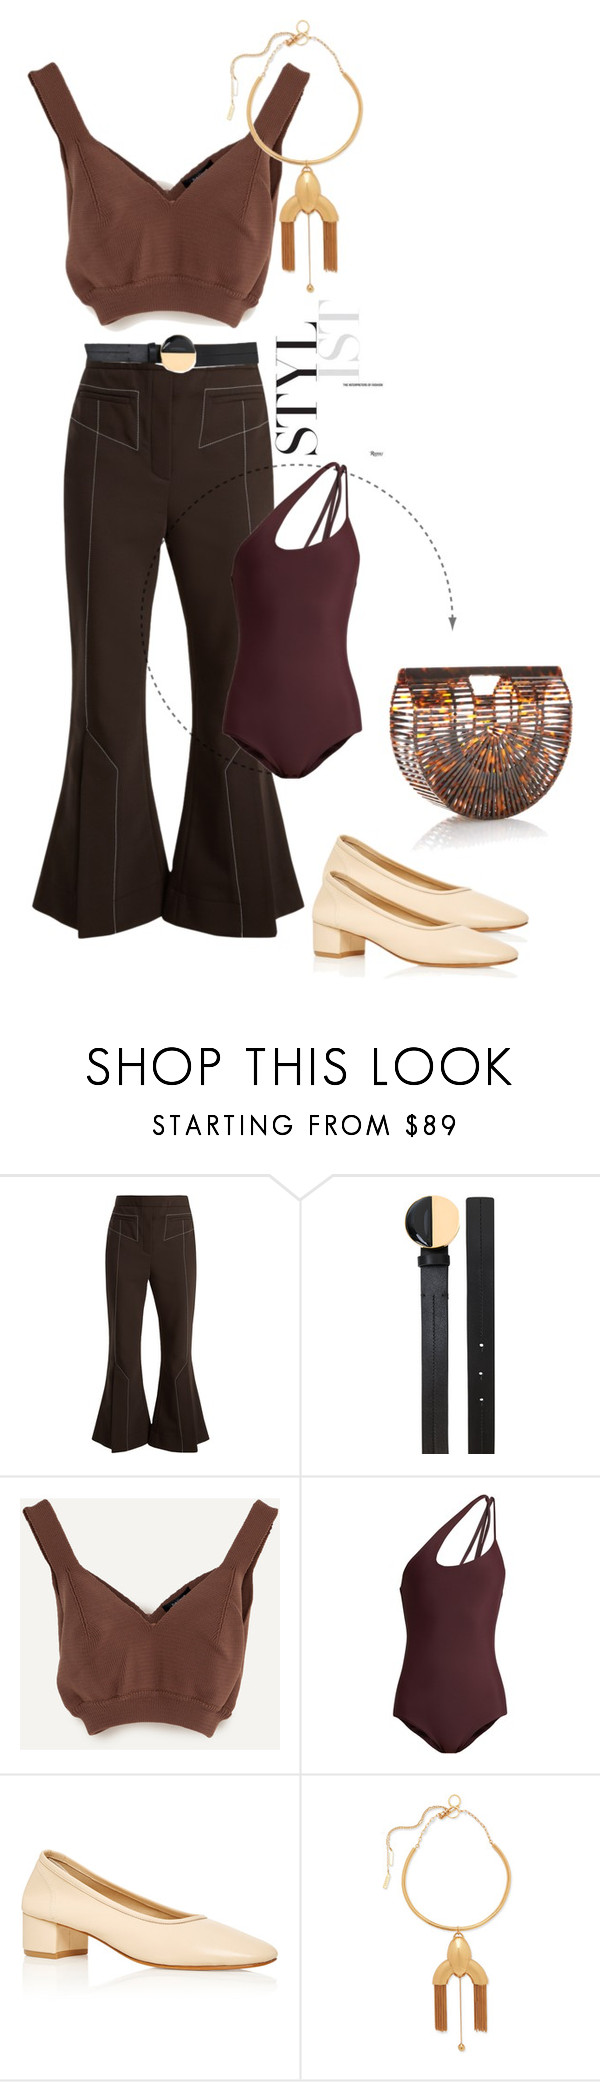 """S U M M E R //"" by statuslusso ❤ liked on Polyvore featuring Mikoh, Maryam Nassir Zadeh, Cult Gaia and Summer"